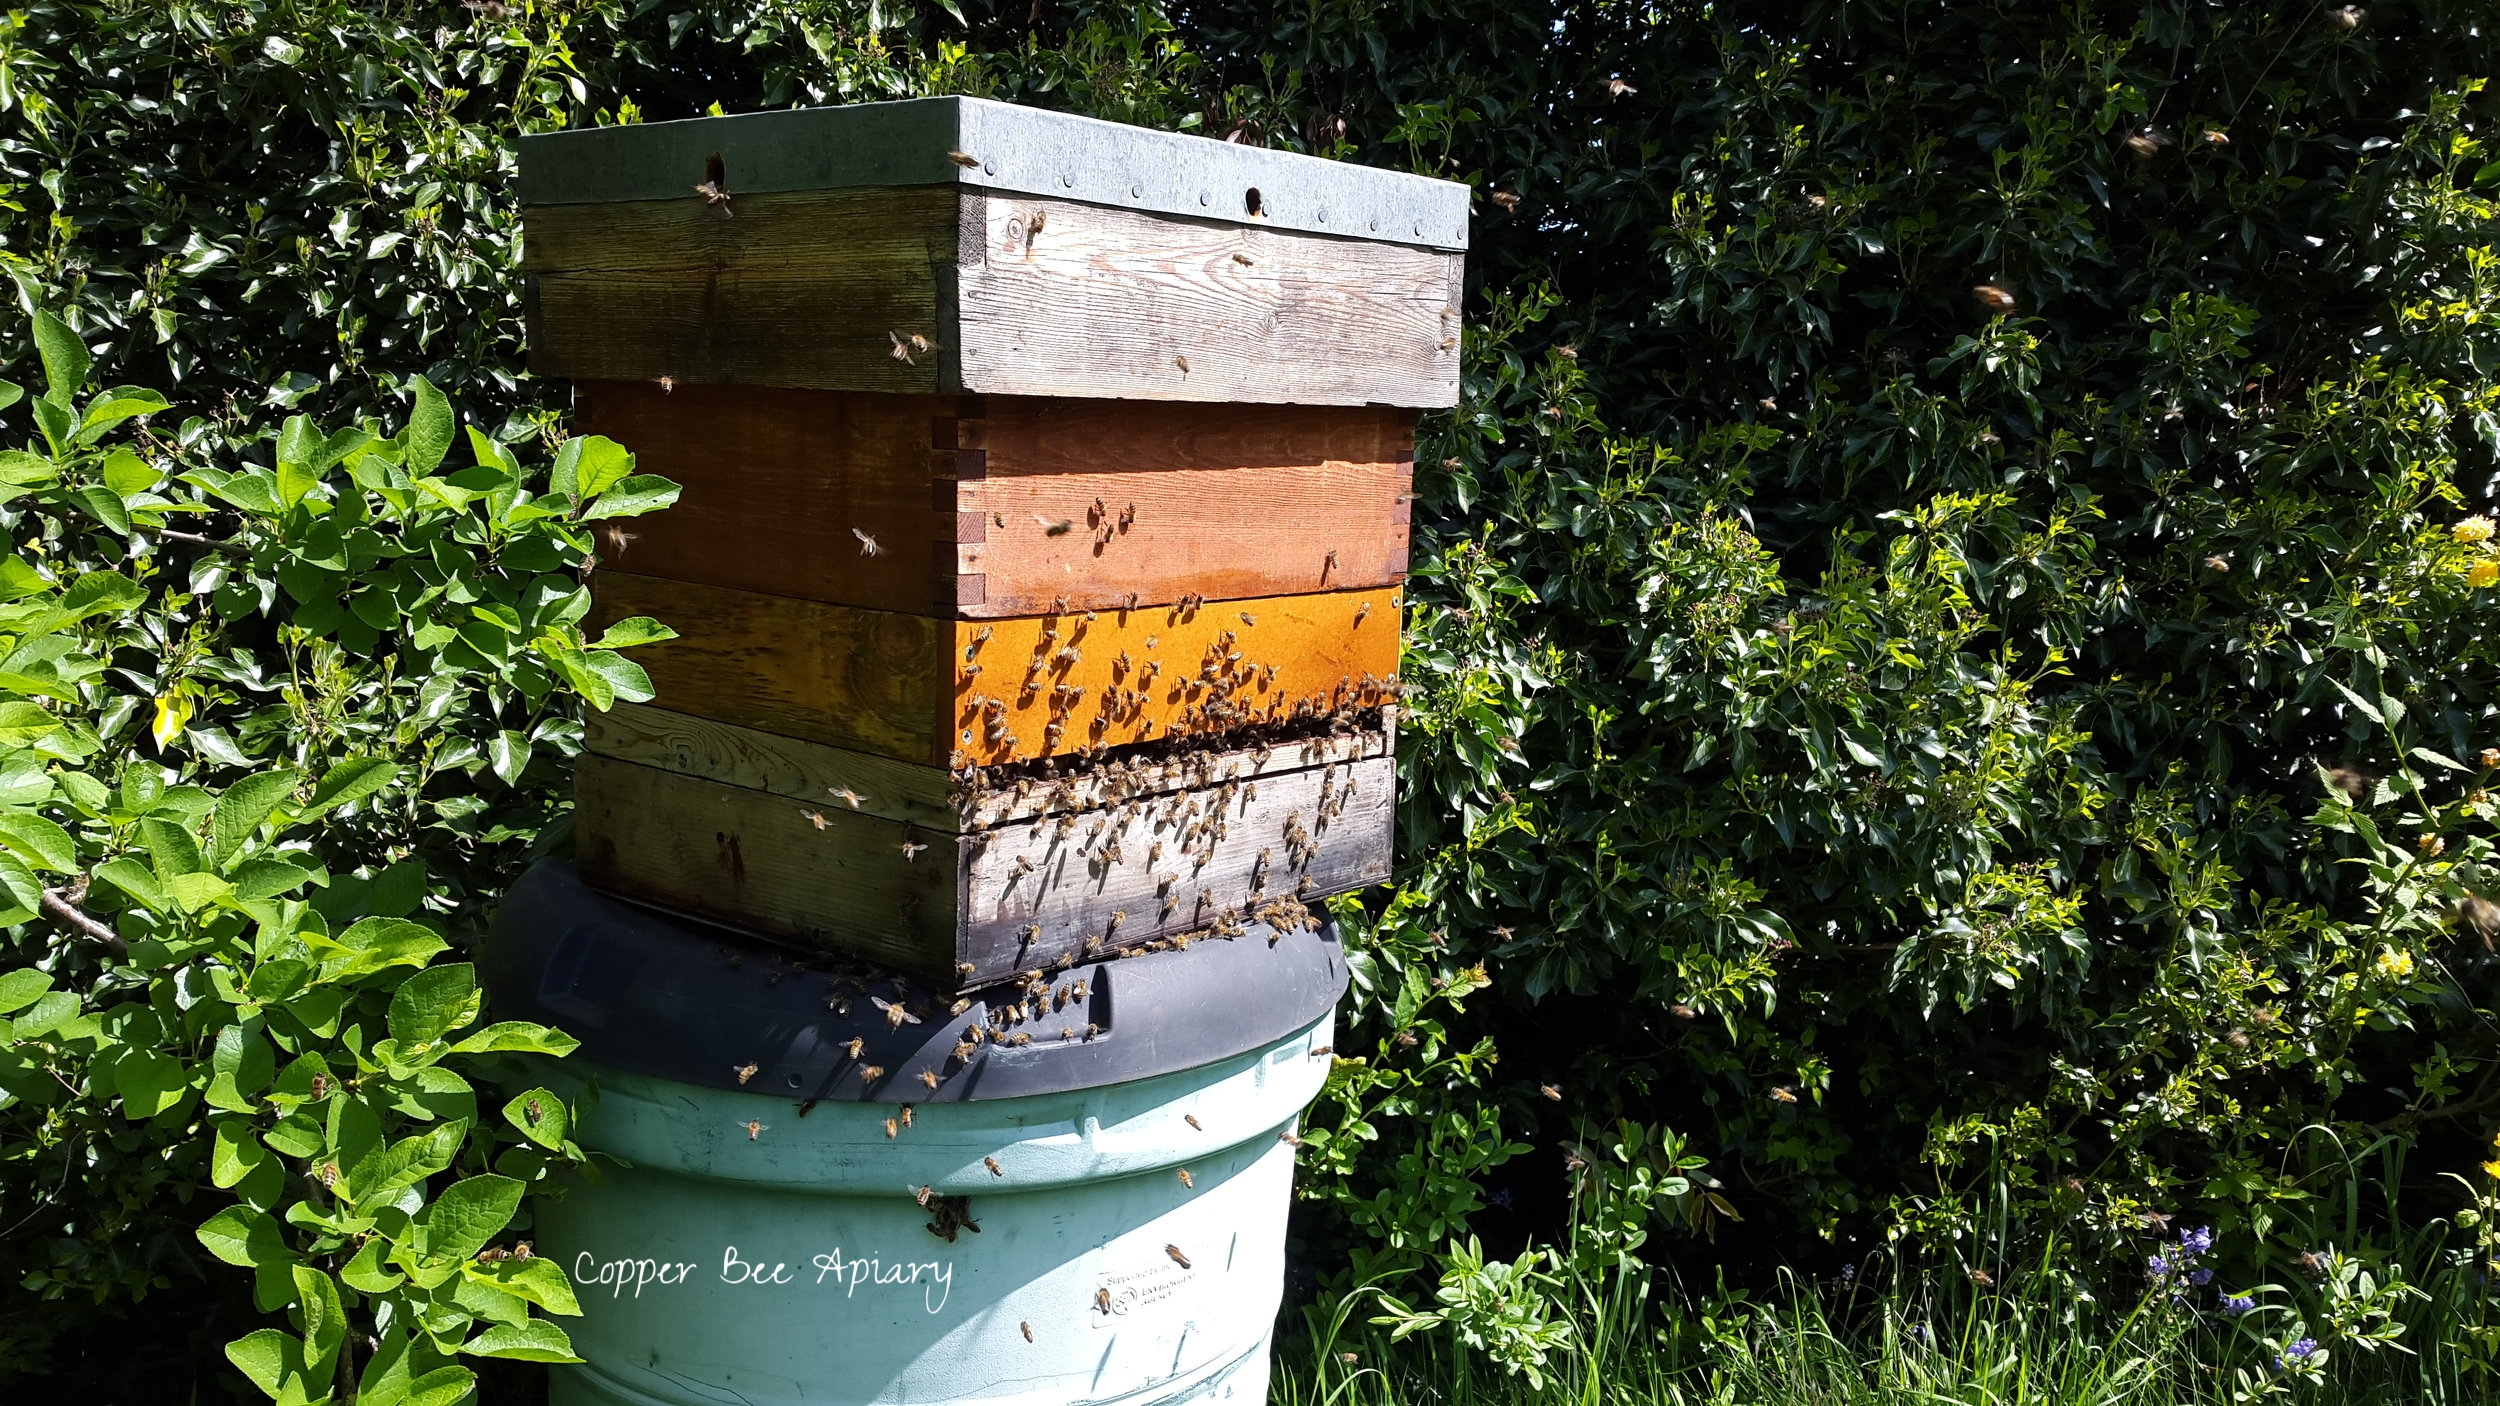 12:05 The bees are mostly in